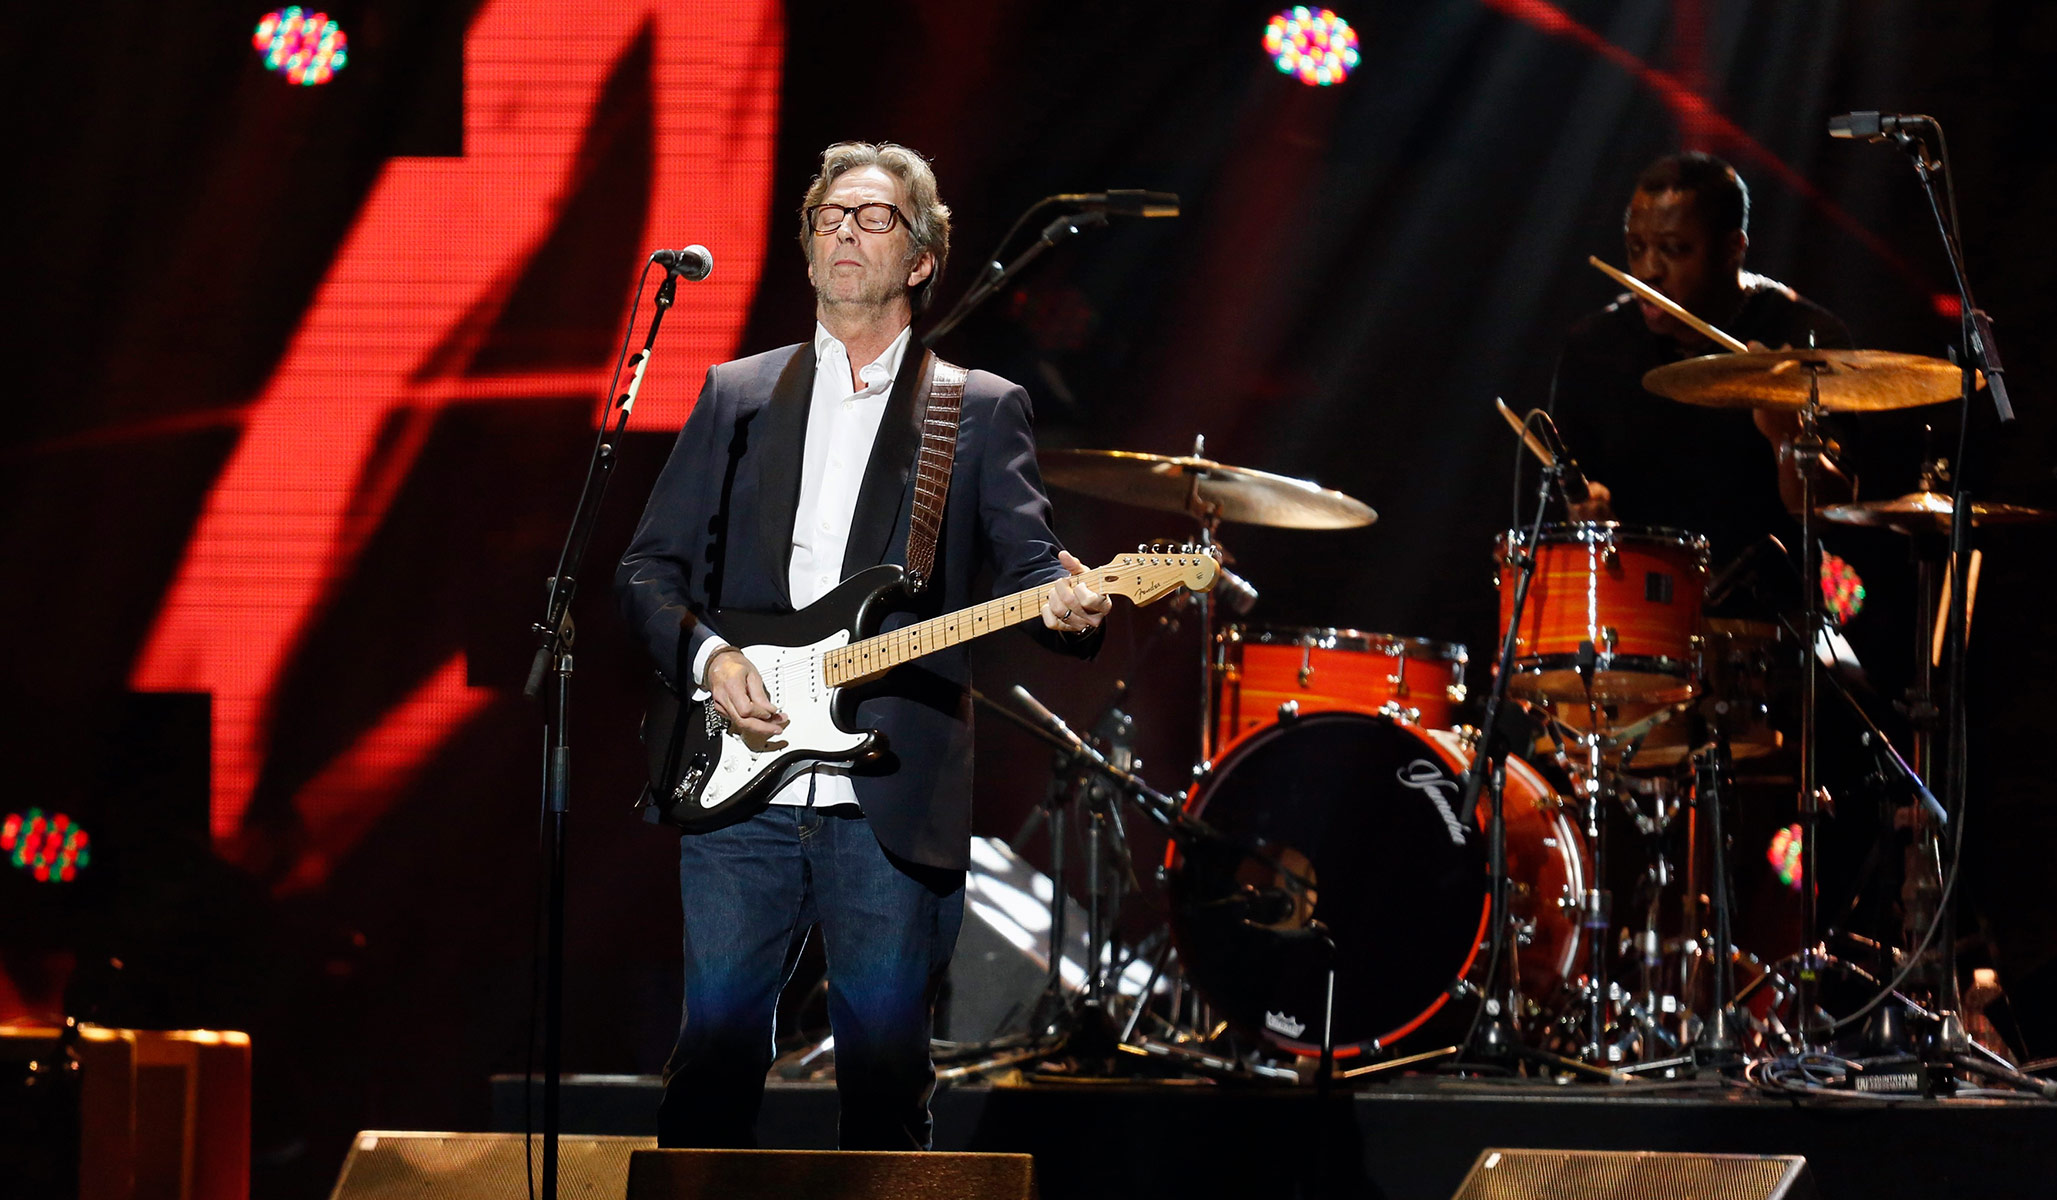 Eric Clapton Endured Hardships to Become Rock Survivor